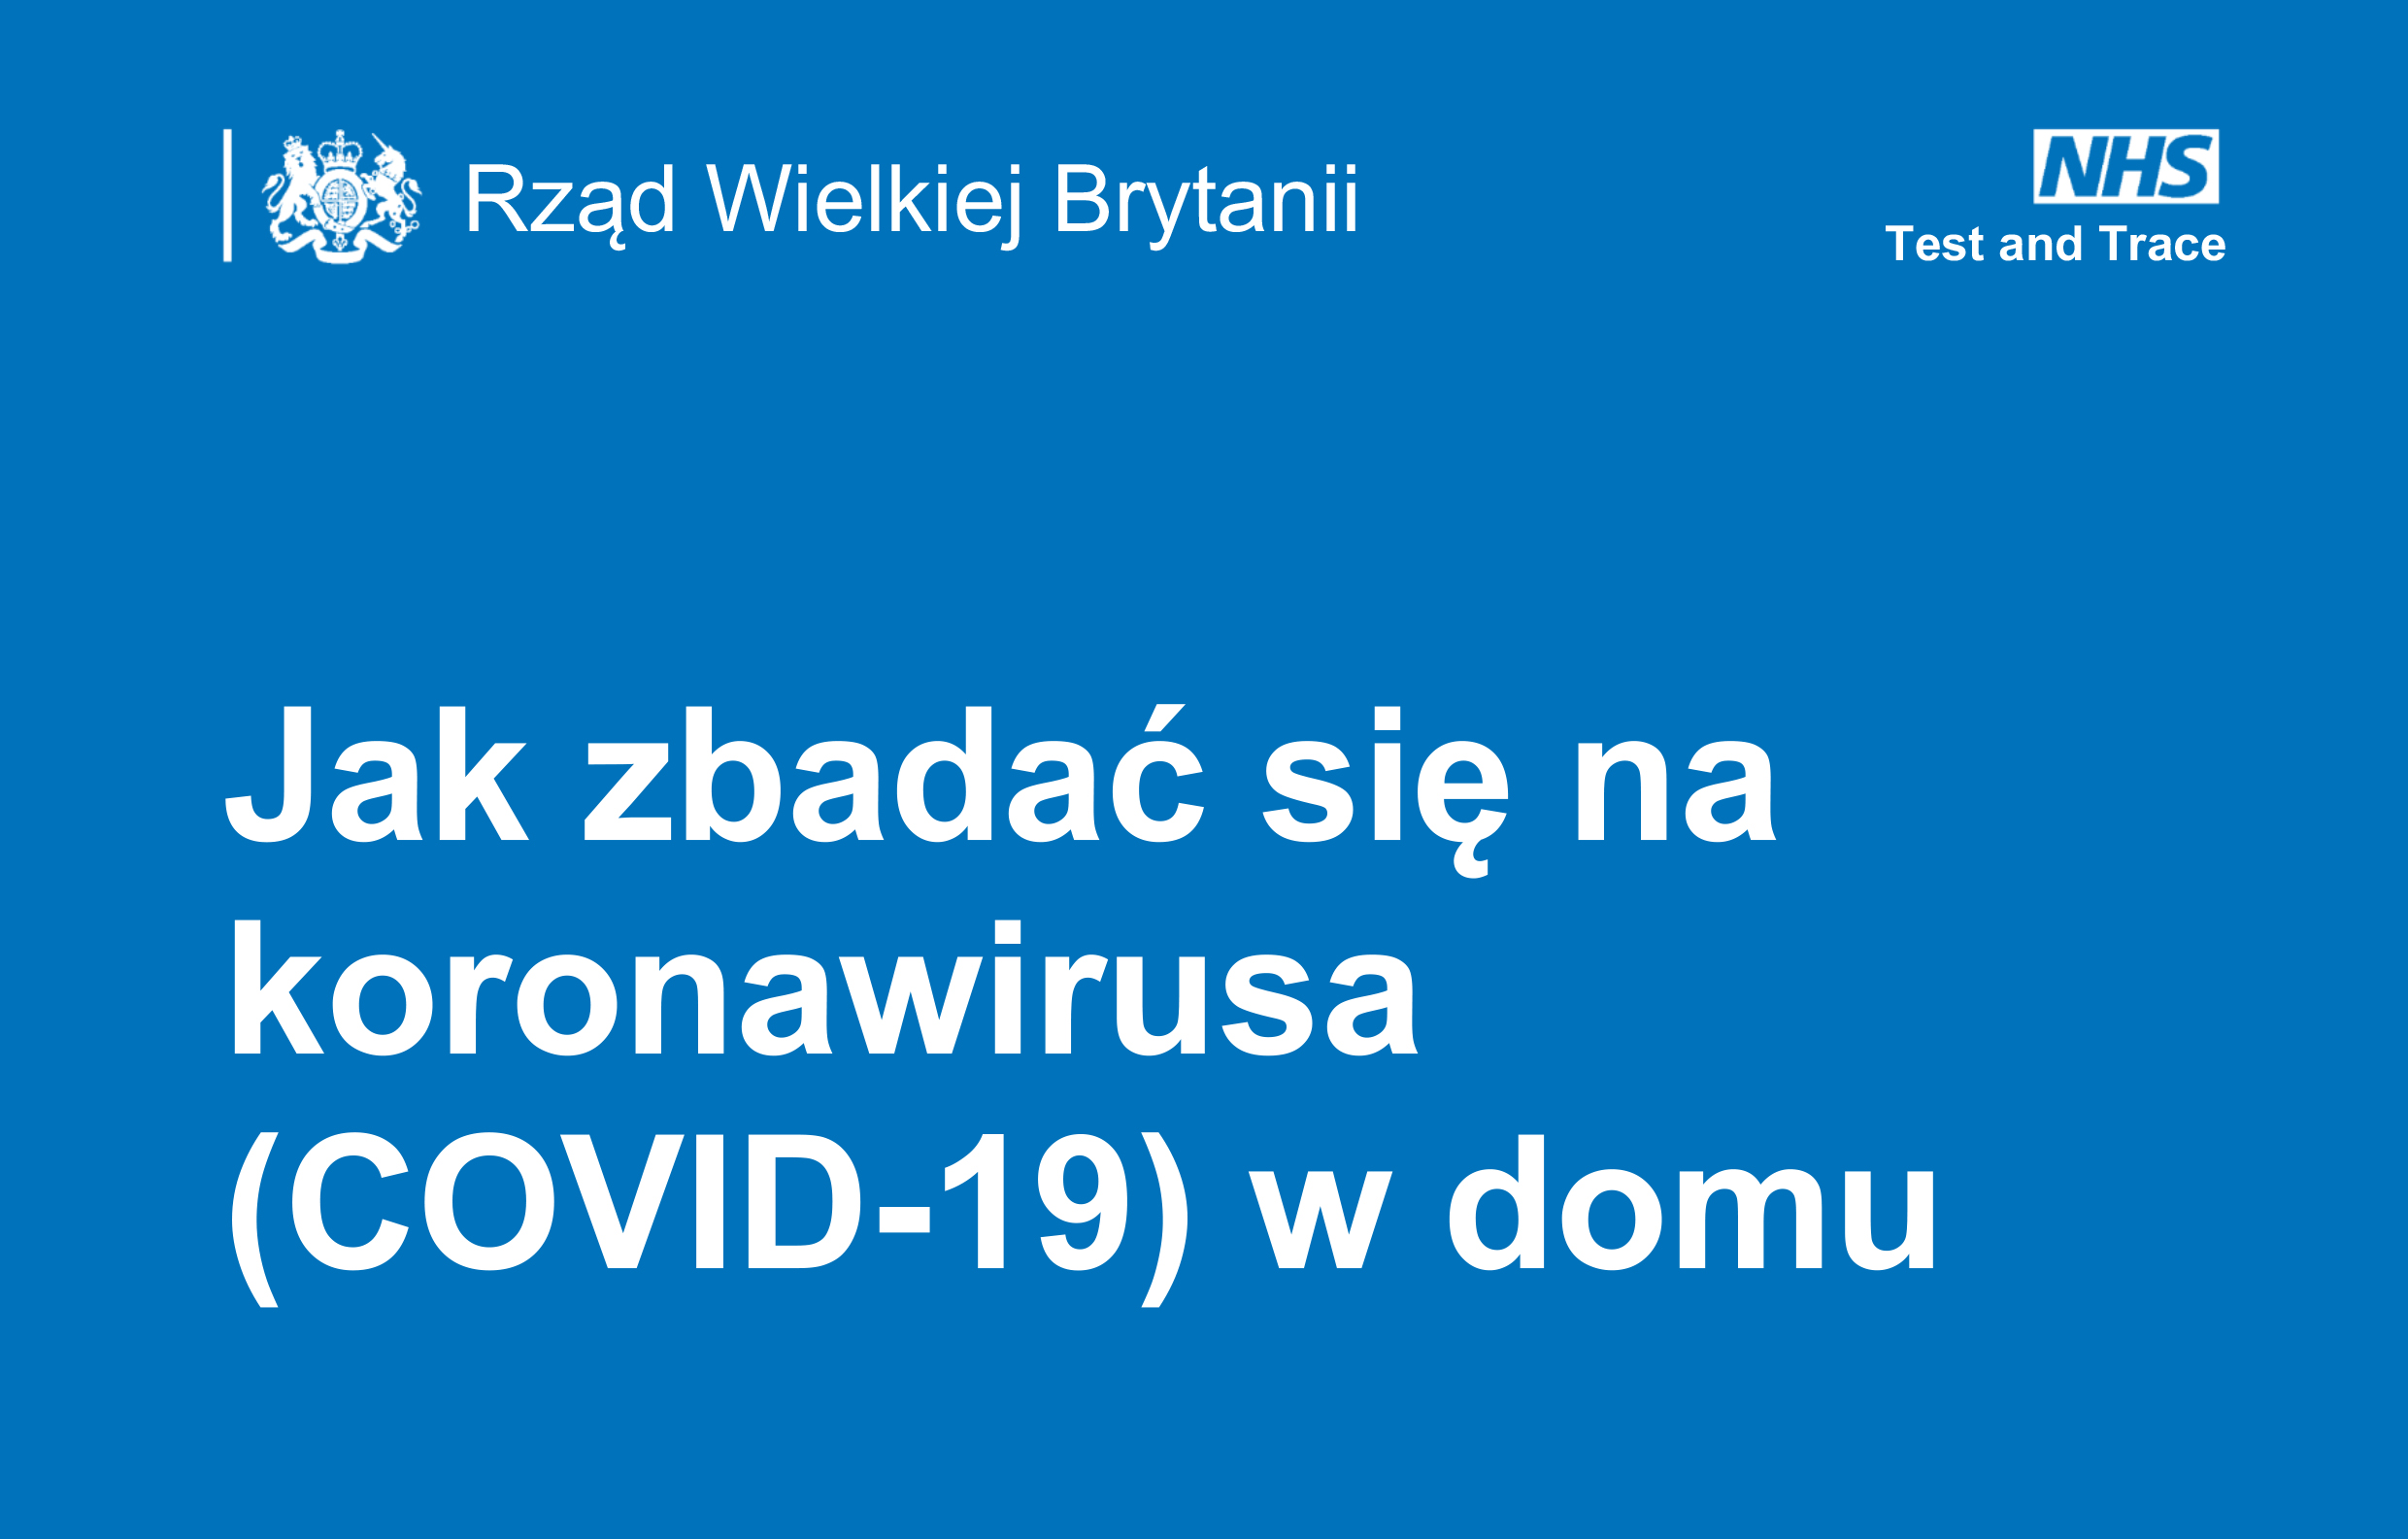 How to test yourself for coronavirus (COVID-19) at home - Polish